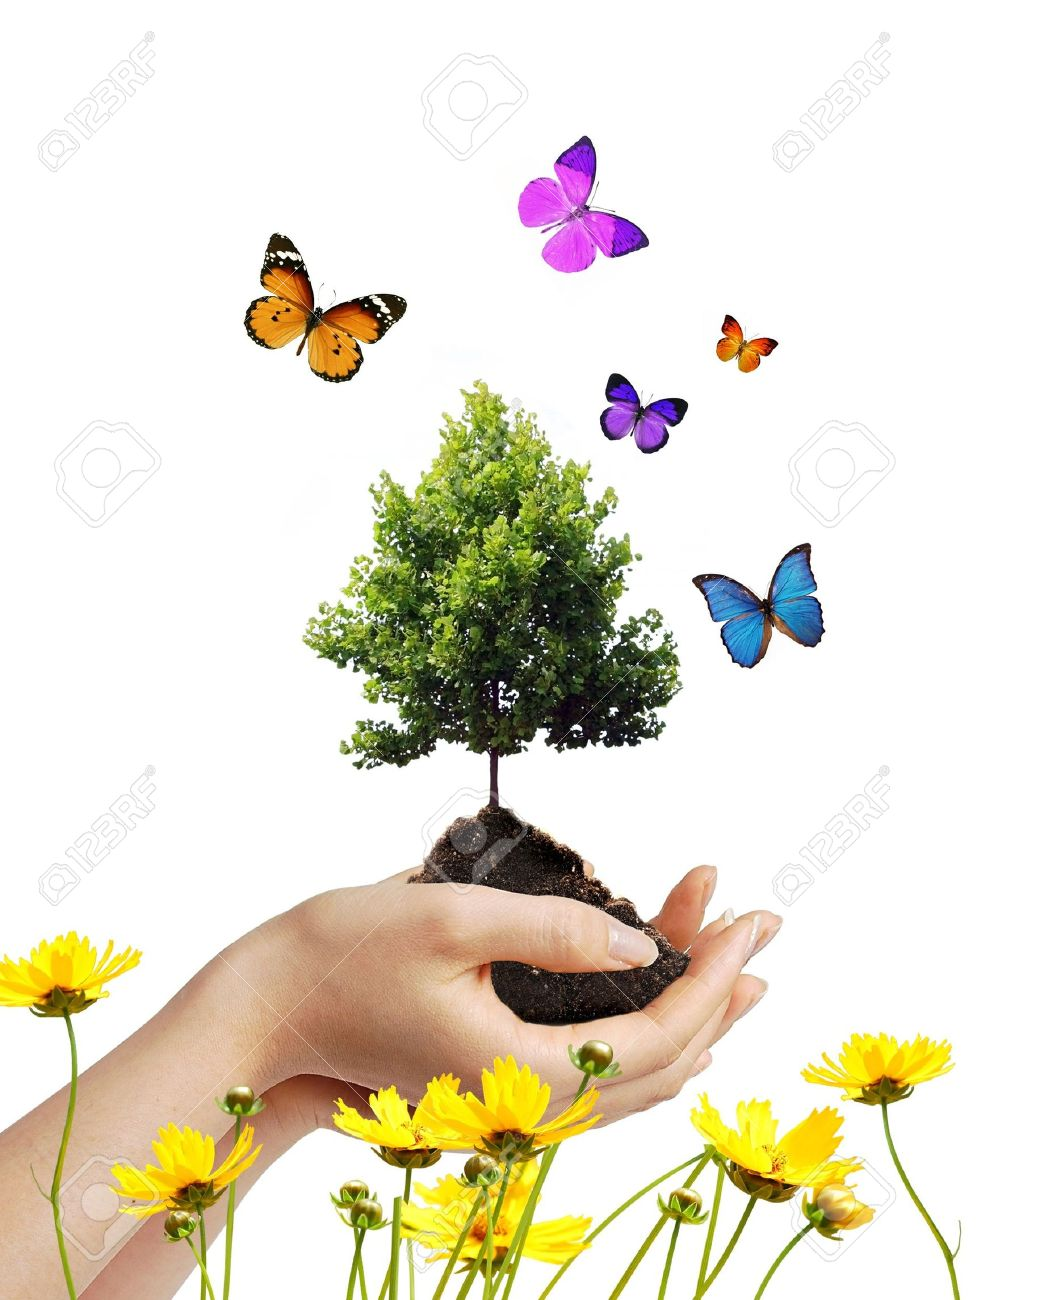 Hands holding dirt and a growing tree with butterflies and flowers - 5201008